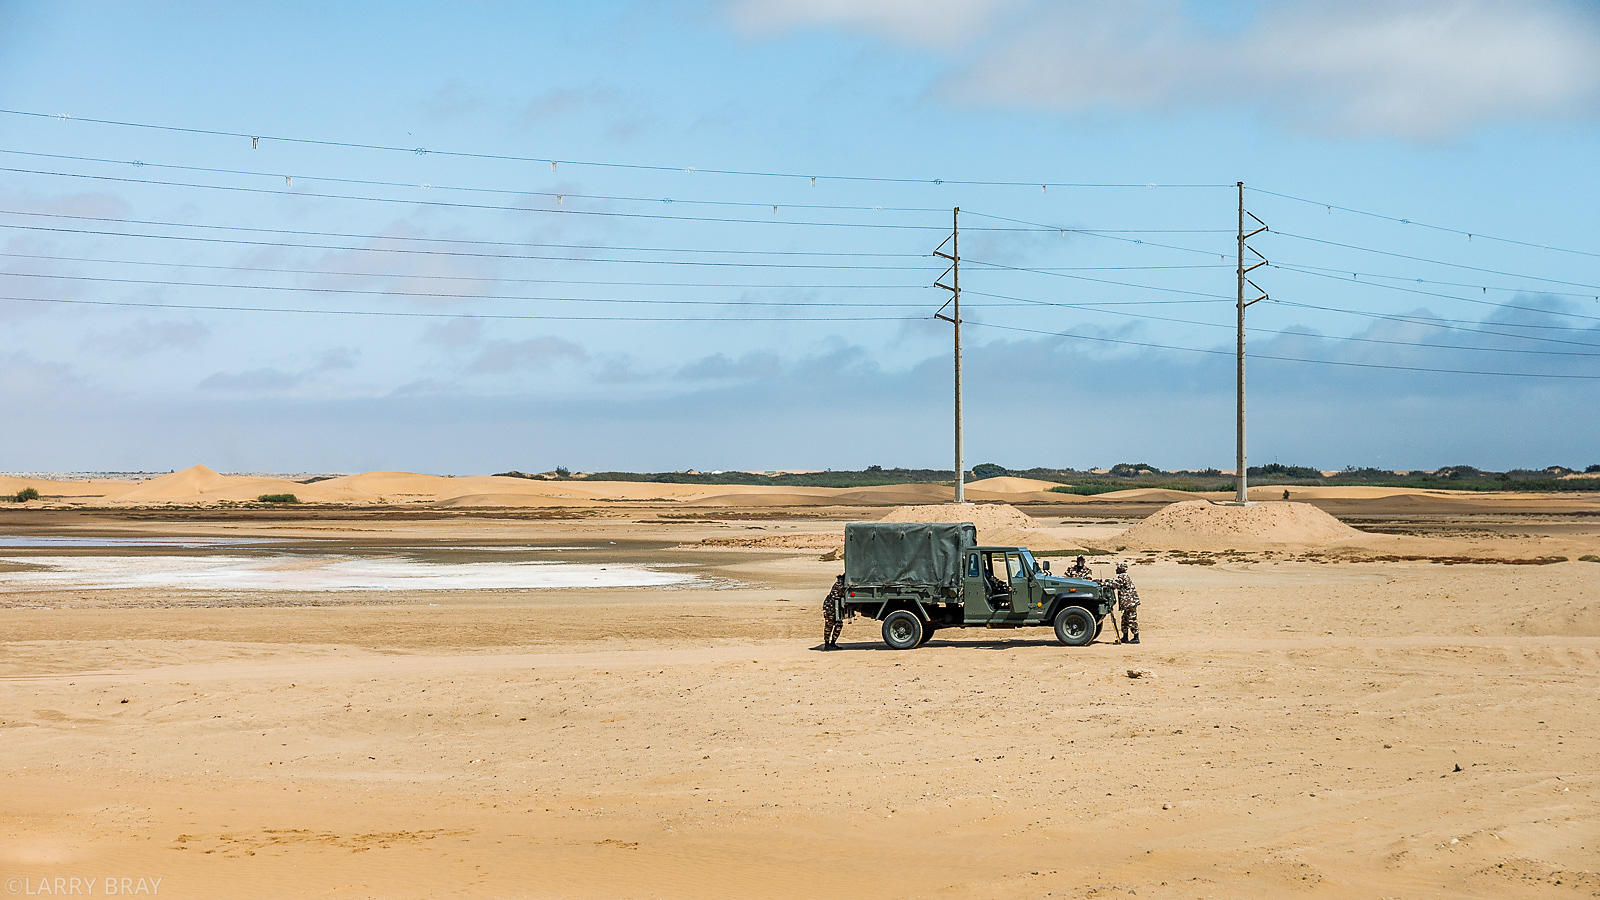 Military vehicle in desert near Swakopmund, Namibia, South Africa